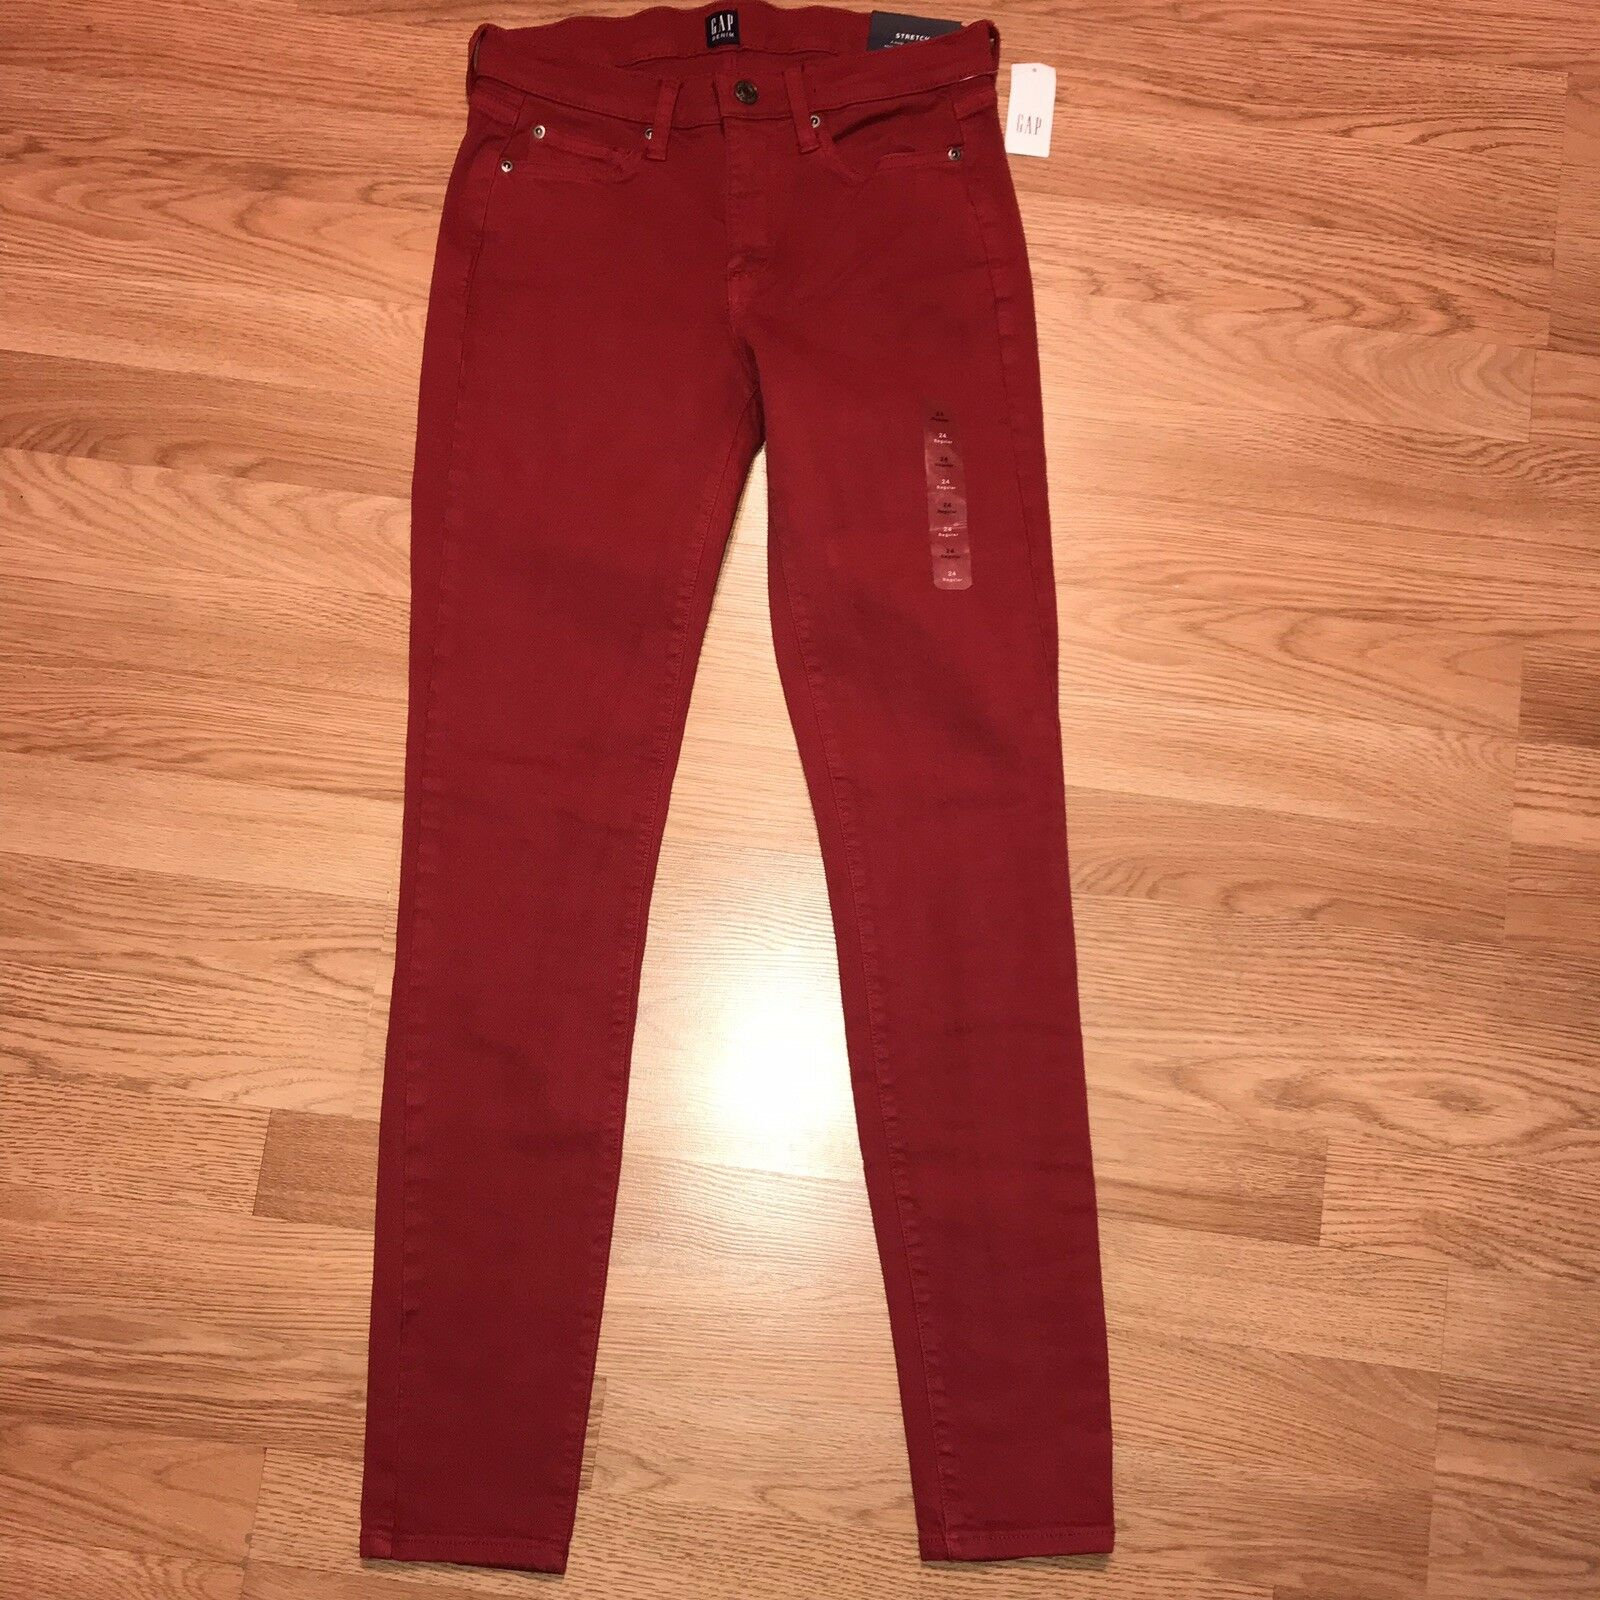 Gap Mid Rise True Skinny Jeans Size 24 Red Women's Stretch Nwt